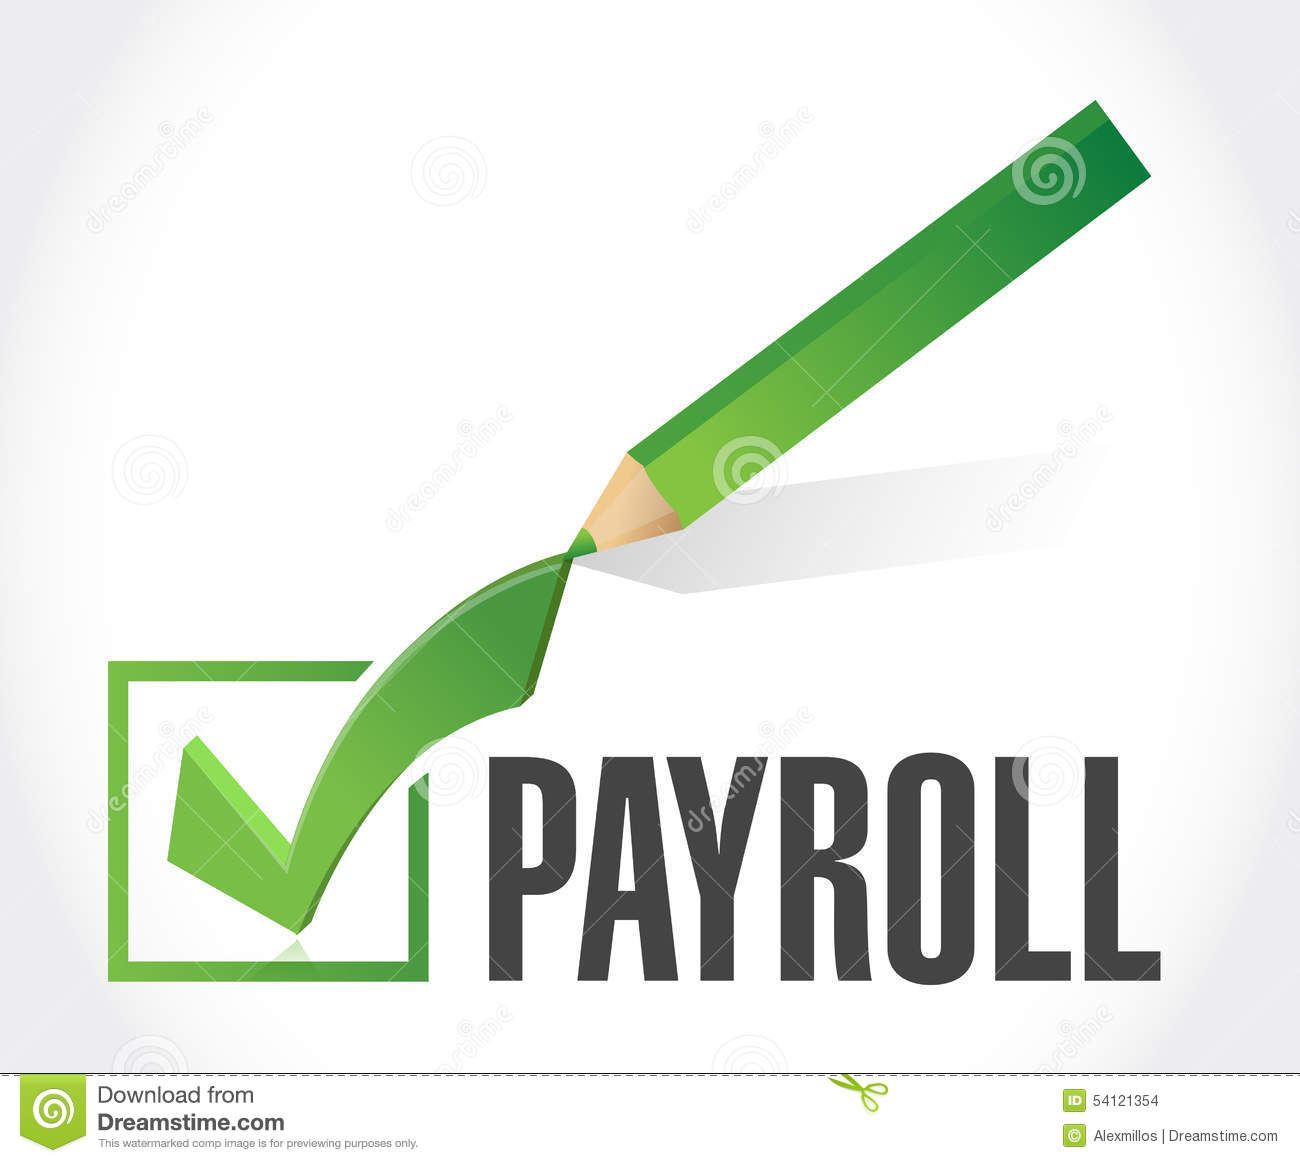 payroll Welcome the power of payroll 1 at your fingertips support for assistance, contact your payroll specialist.